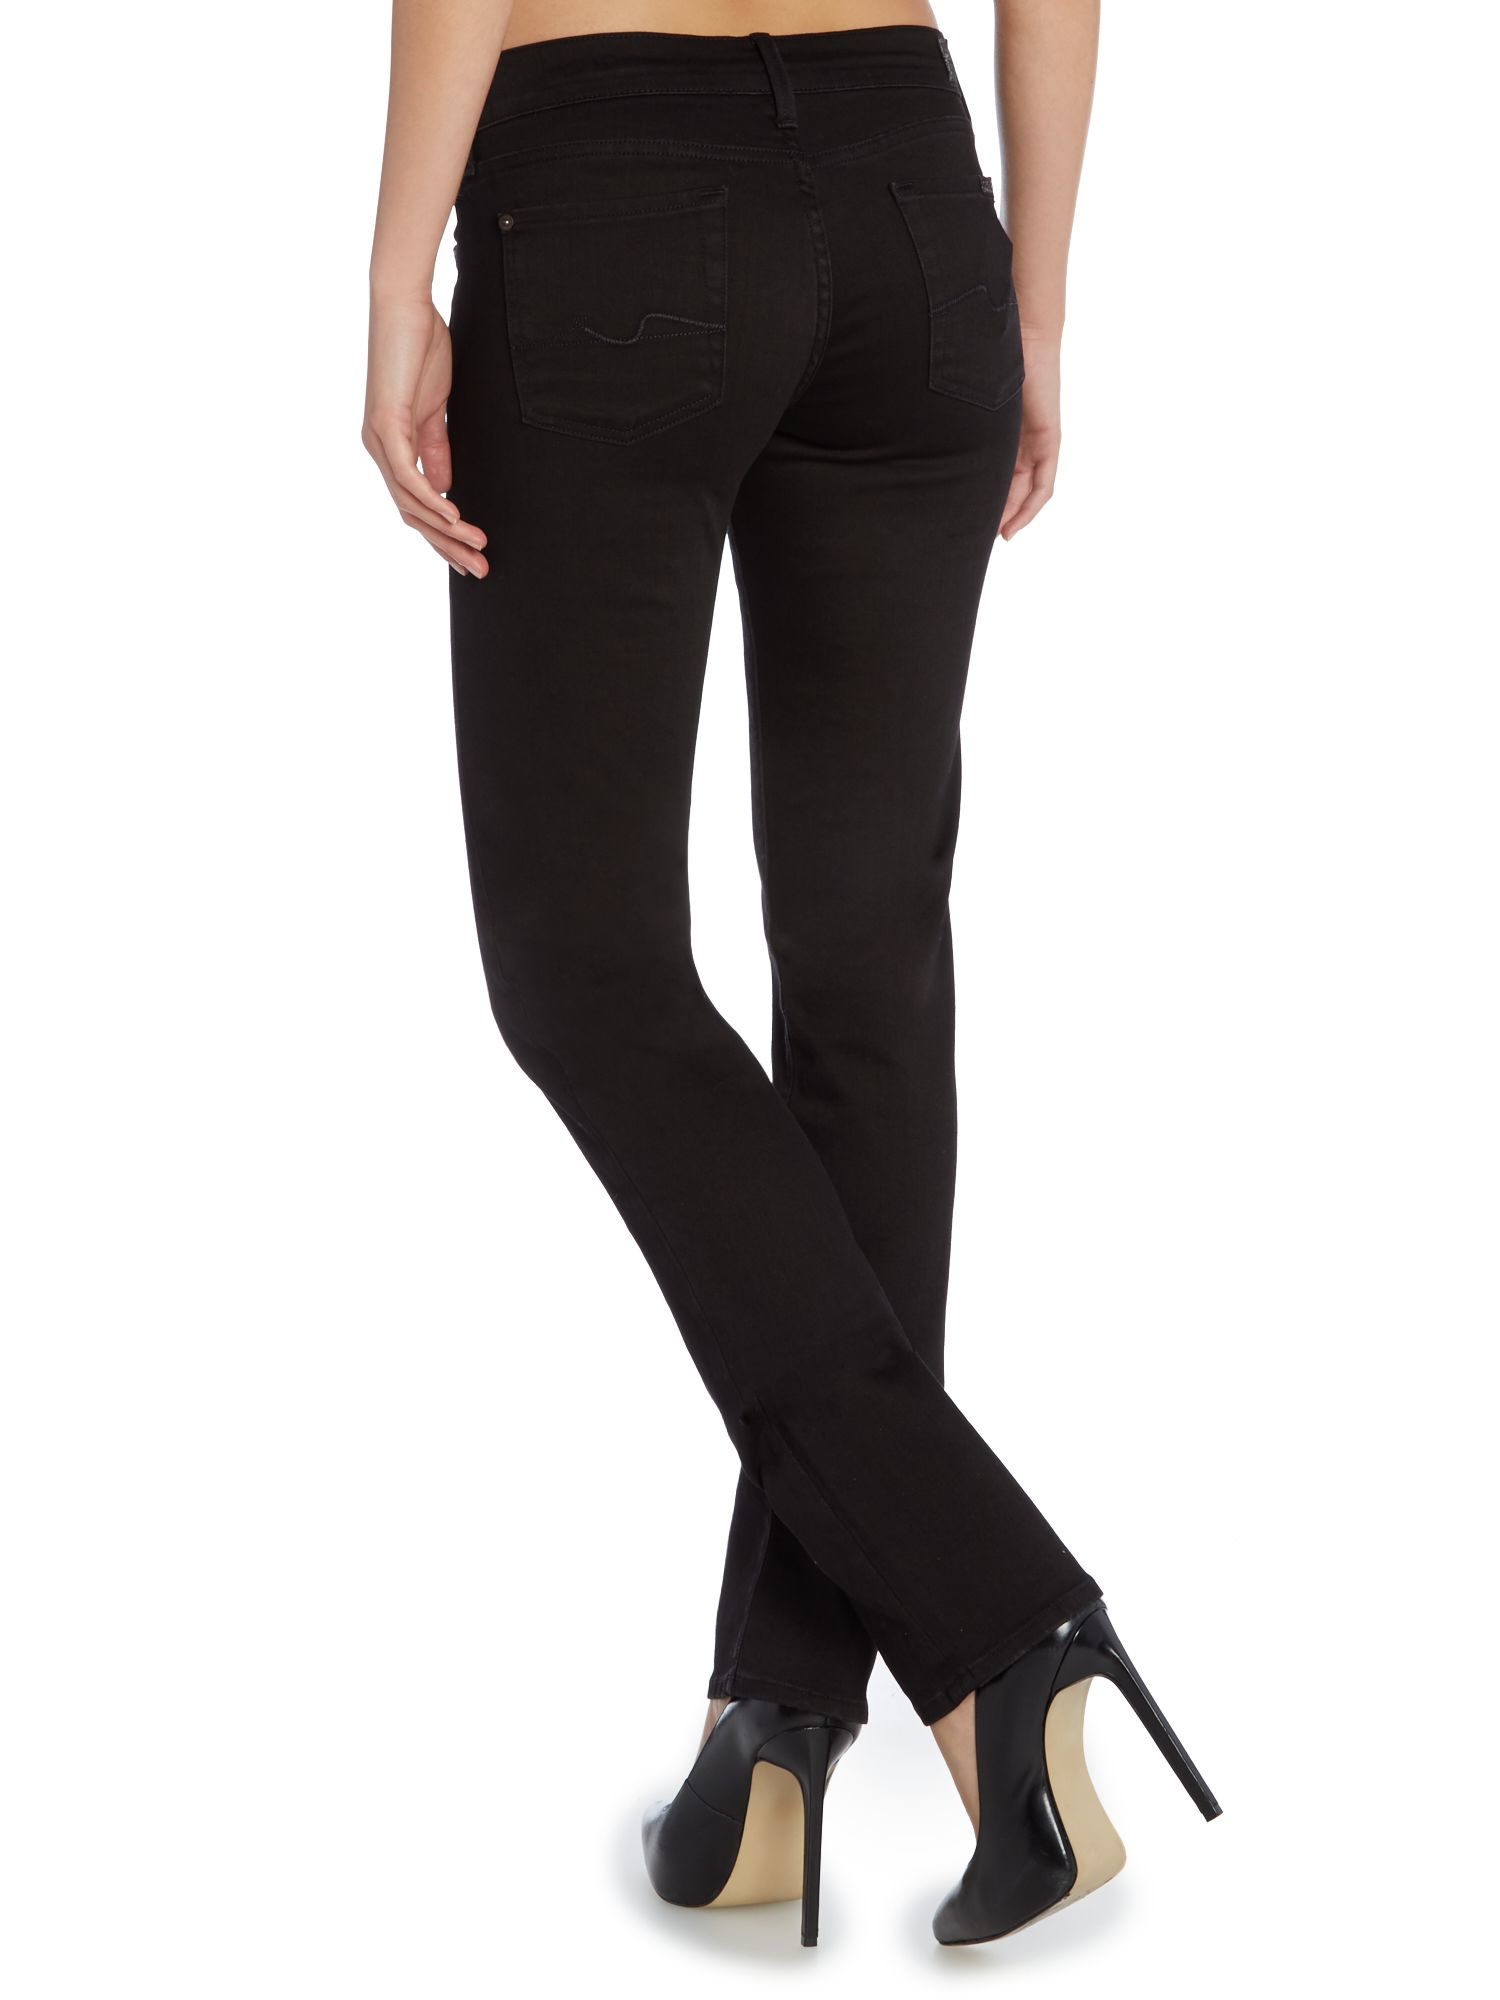 Awesome Puma Straightleg Active Pants In Black  Lyst